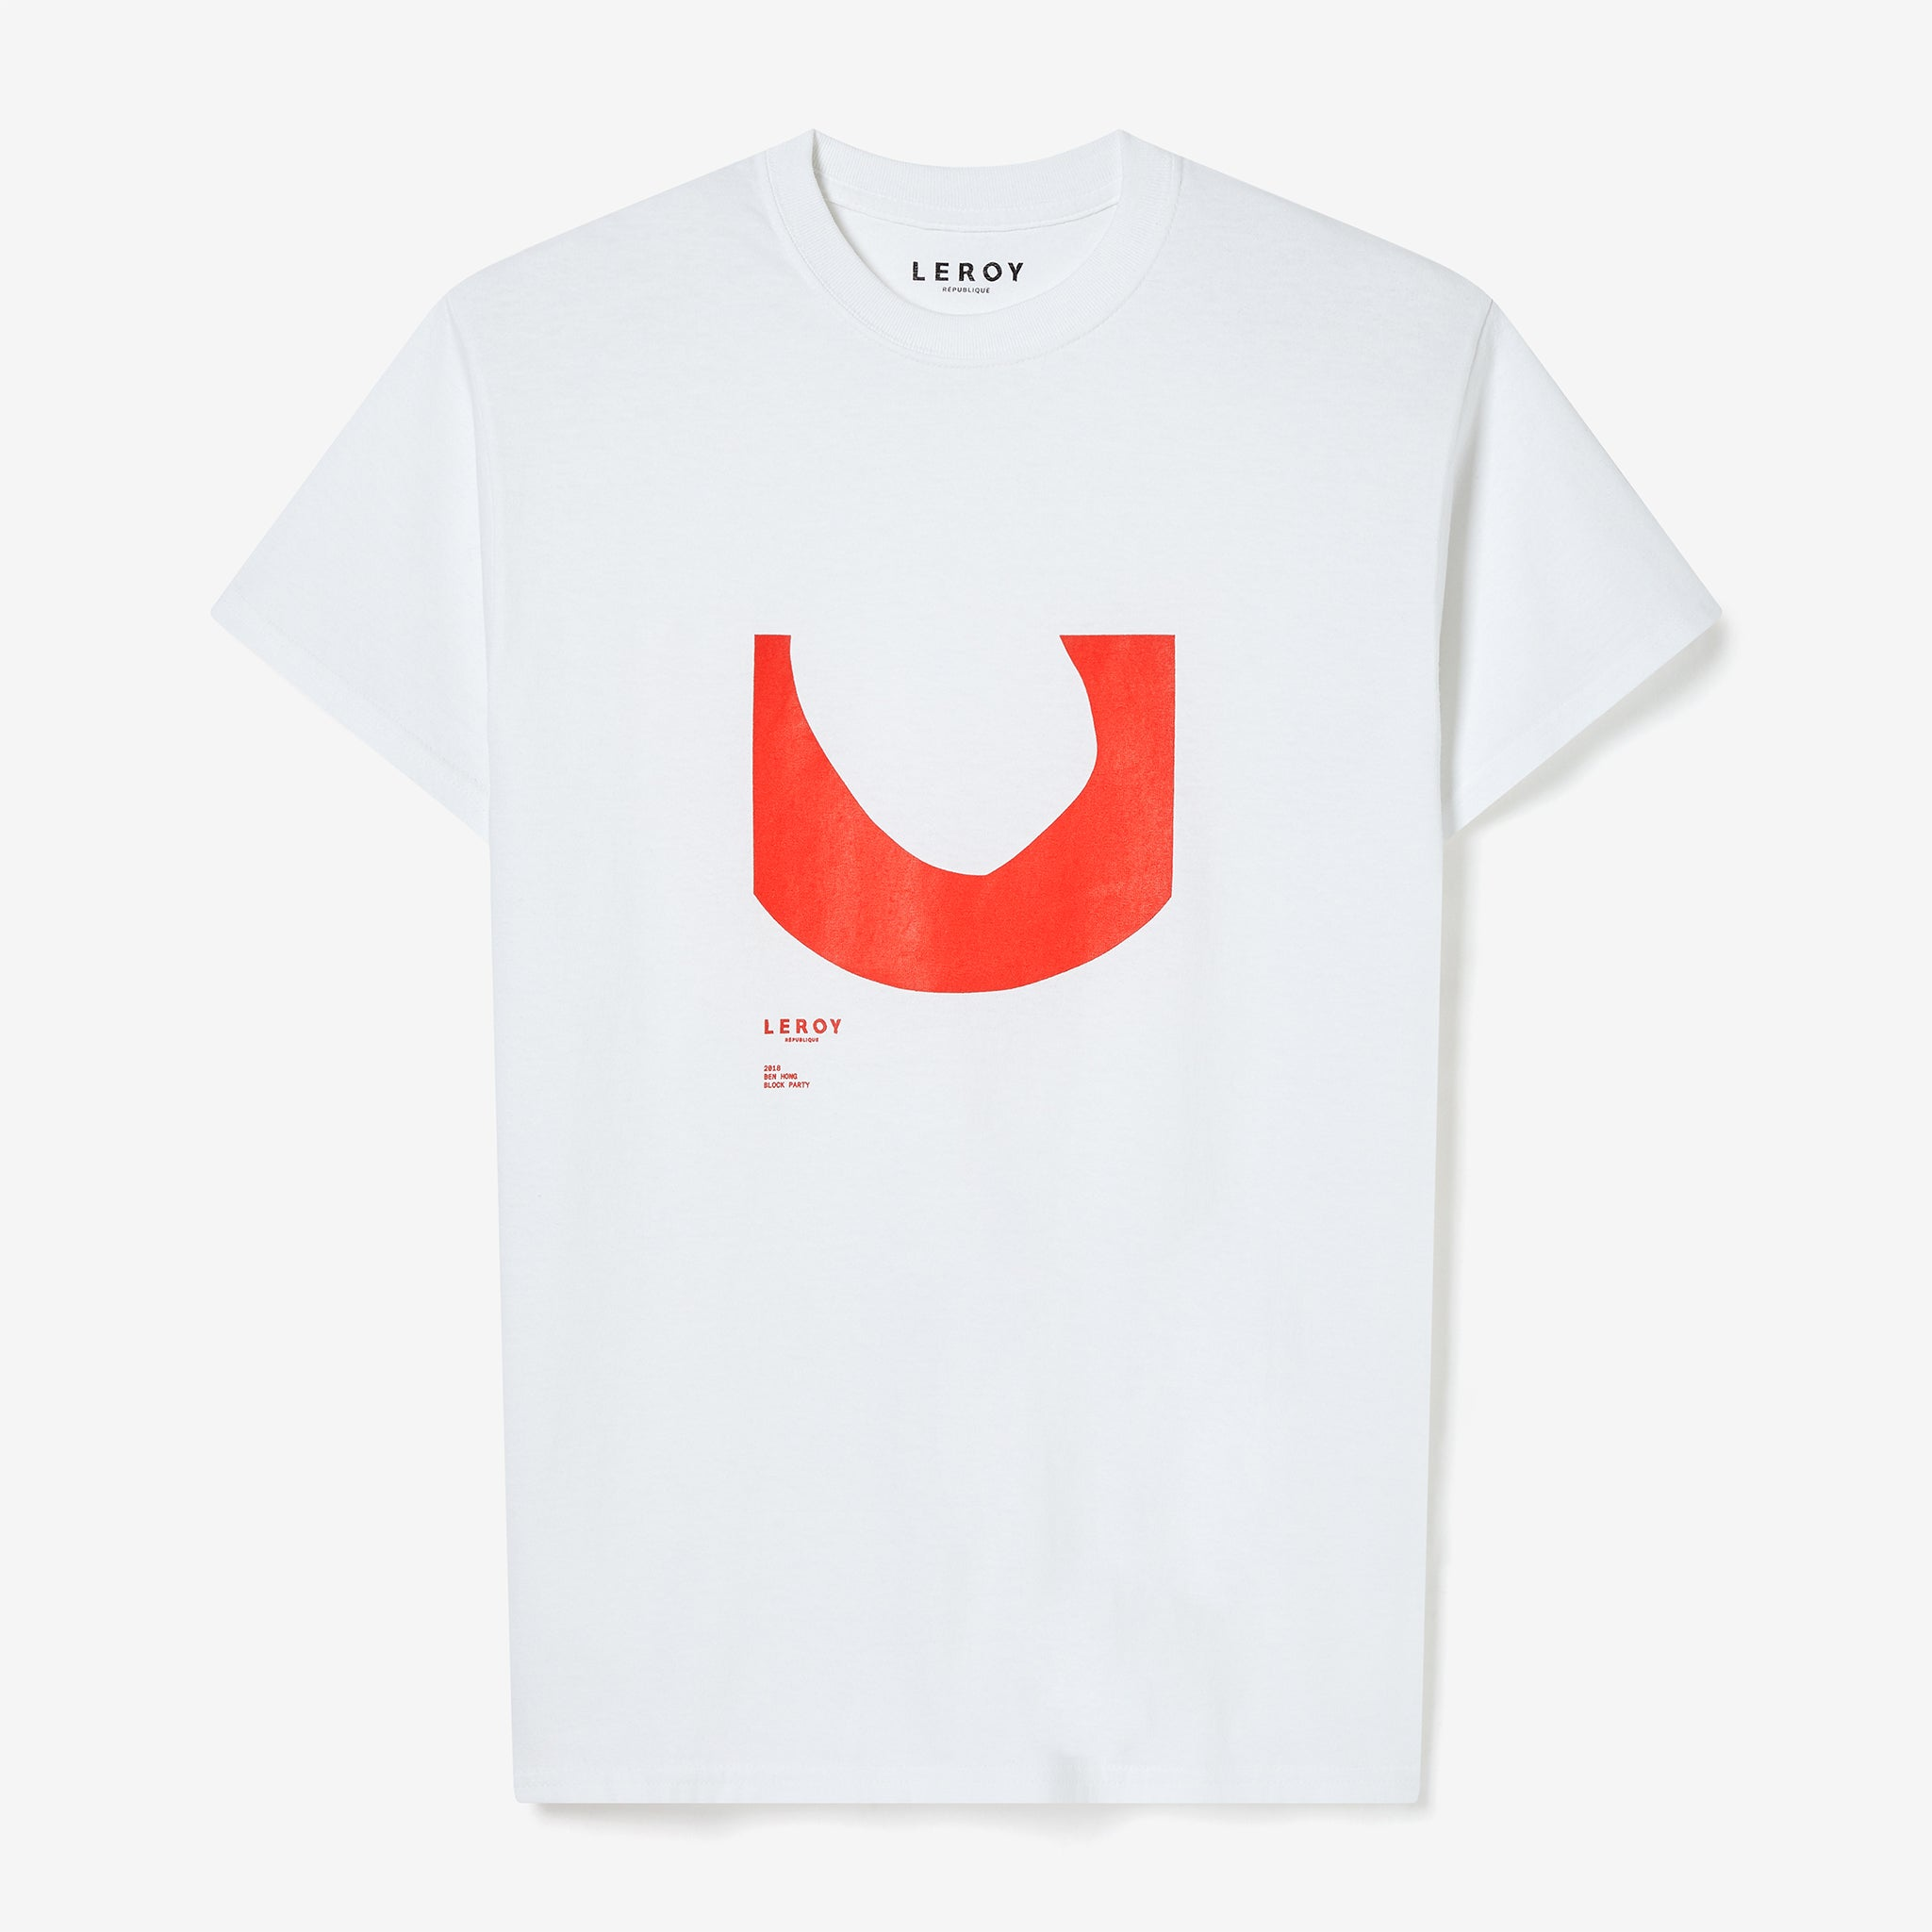 Ditch bright red T-shirt